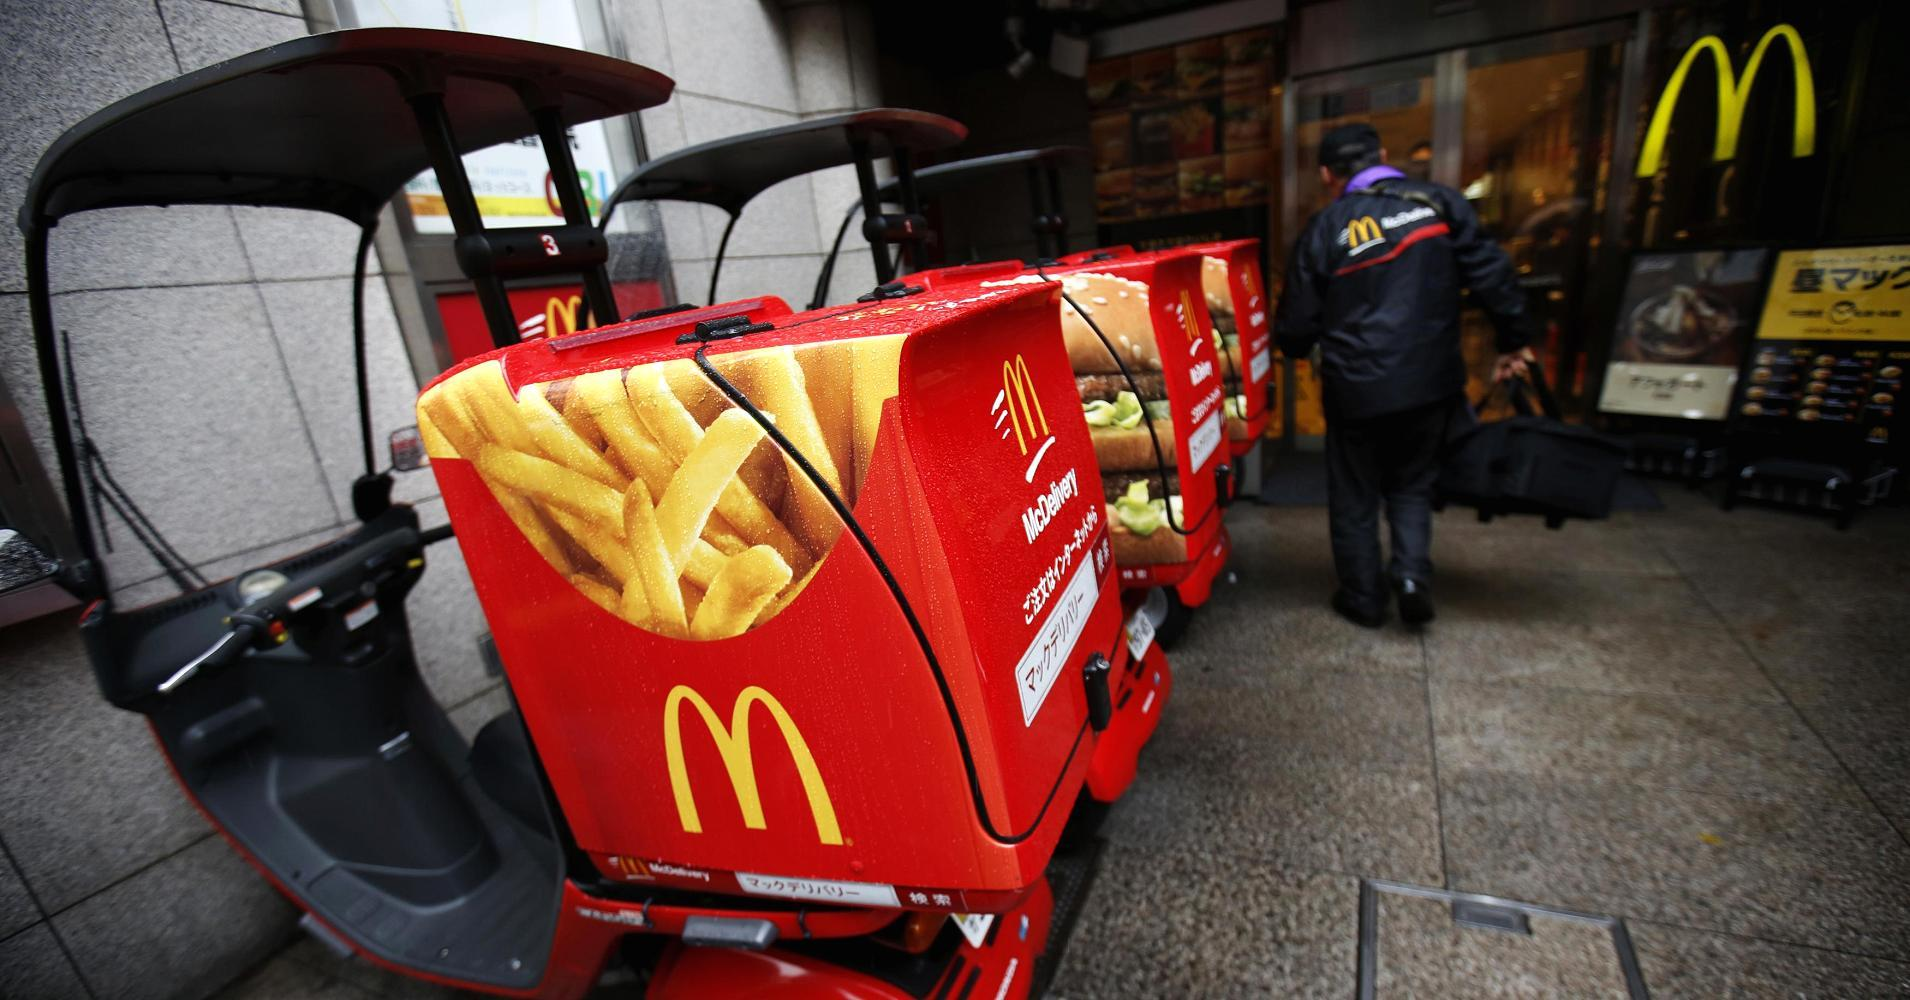 mcdonald s strategy in the quick service restaurant industry The industry is dominated by a number of international quick service restaurant (qsr) chains, including mcdonald's, burger king, pizza hut, kfc and domino's (datamonitor, 2010.